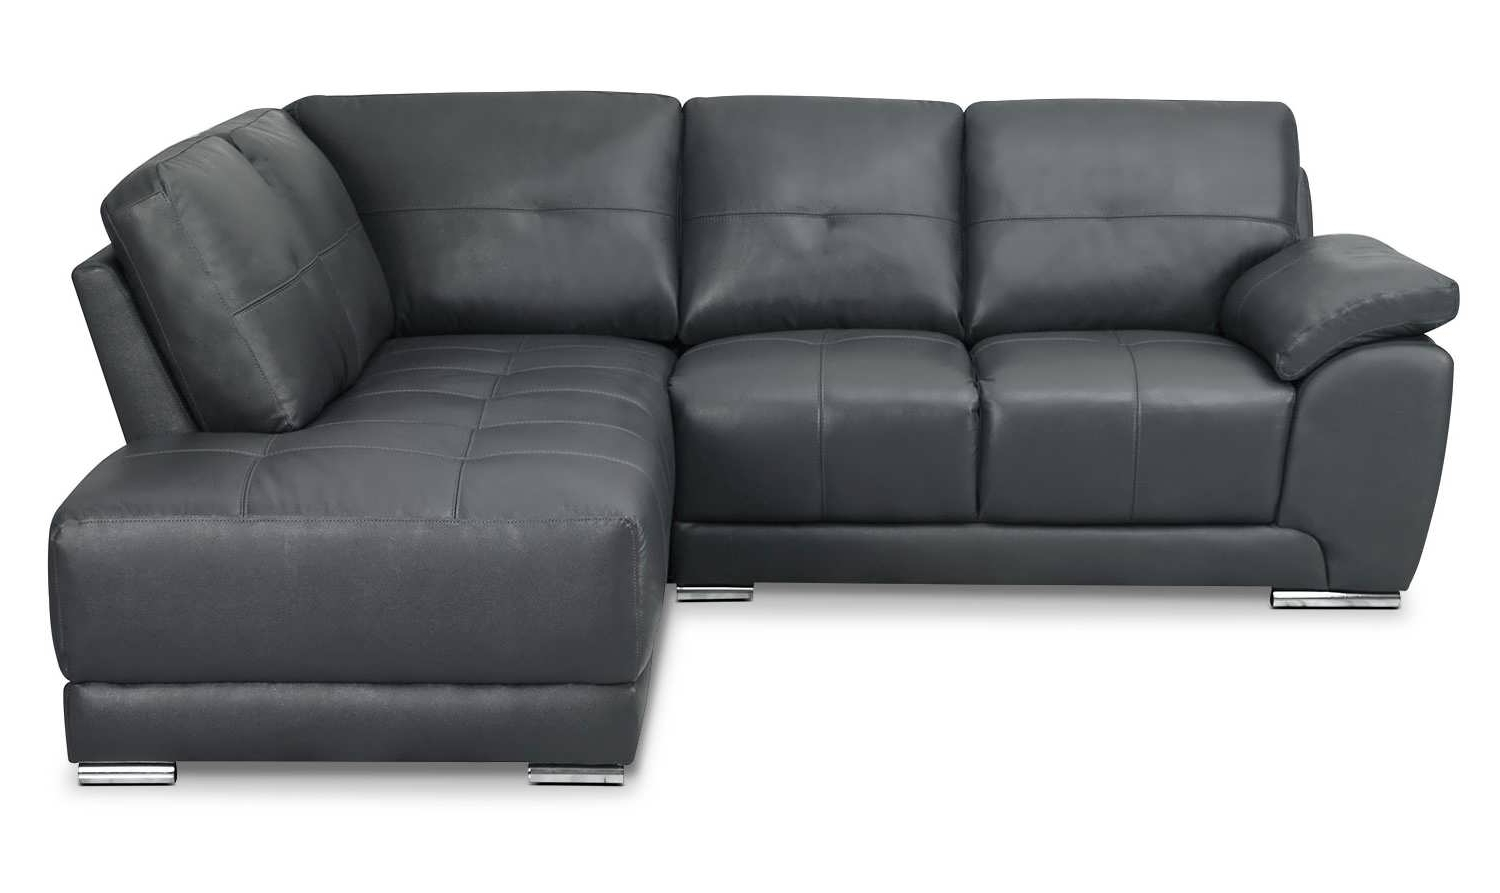 Sofa : Best Sectional Sofa Small Sectional Sofa With Chaise L Throughout Well Known L Shaped Couches With Chaise (View 11 of 15)